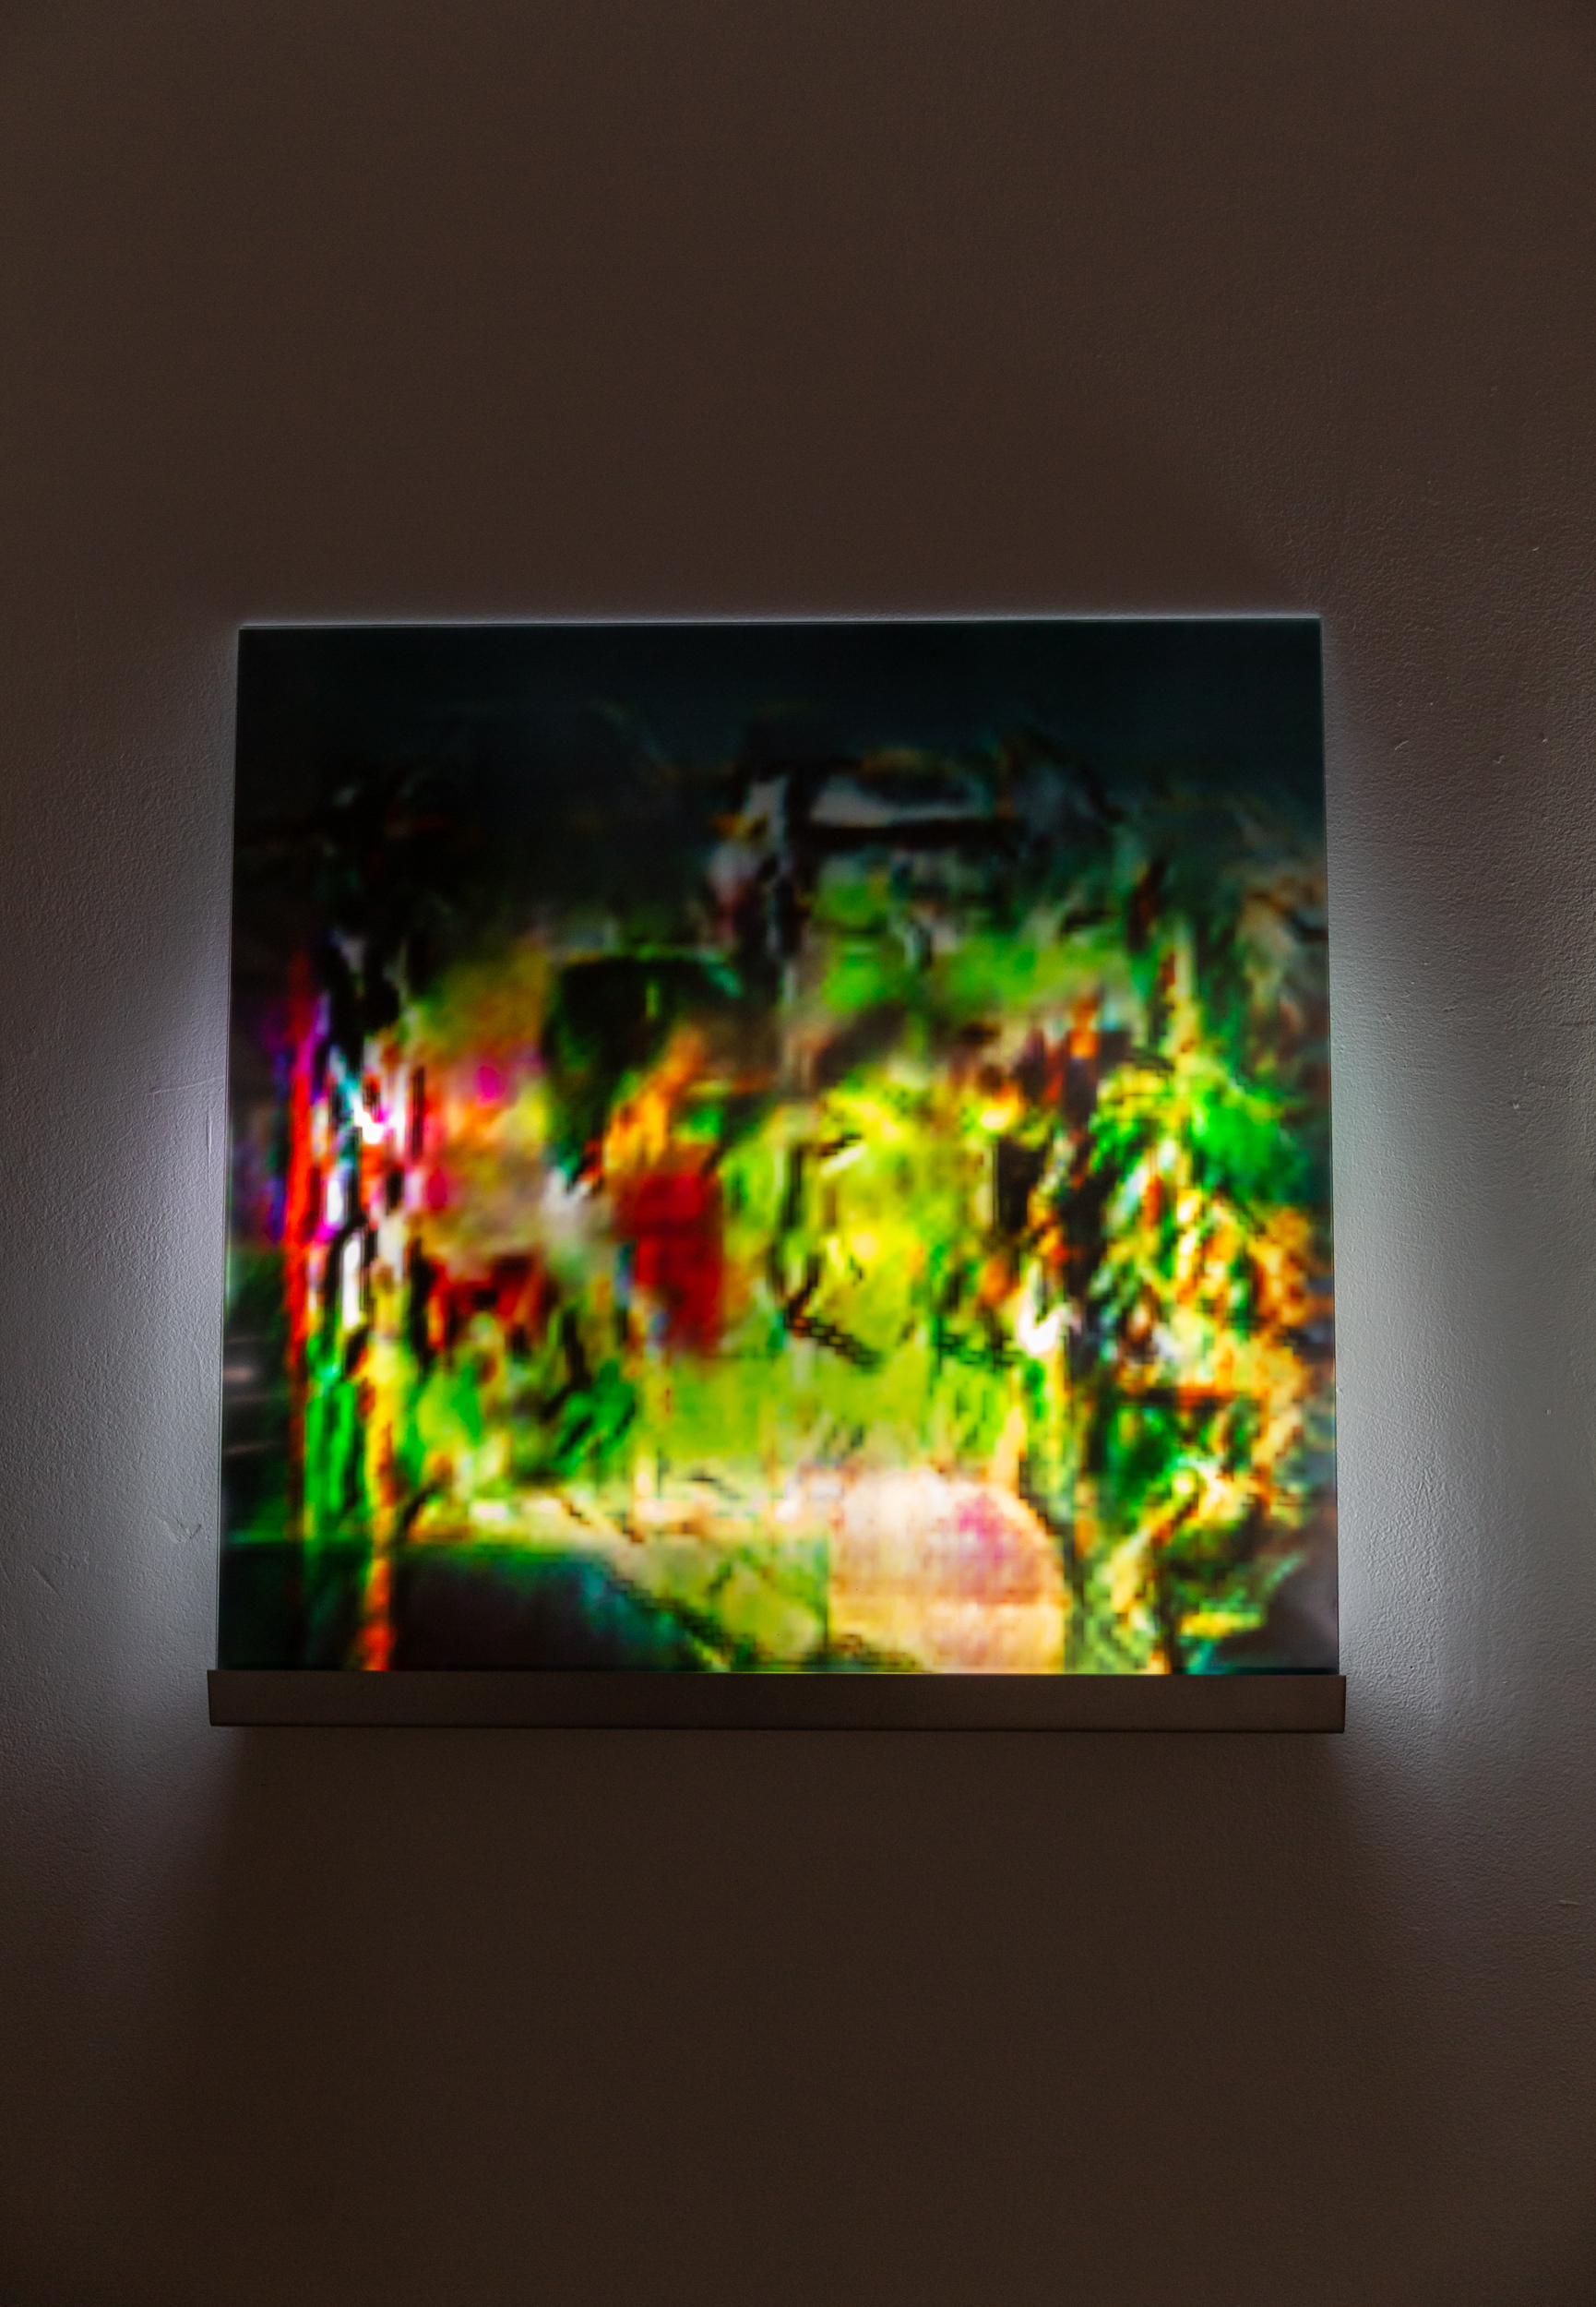 THE ACT OF BEING PRESENT AND HOLDING SPACE FOR AN ENTIRELY NEW WAY OF THINGS IS BEING/CURRENT(ROOM WITHOUT NEEDING TO PUSH THE TIME).  Inkjet Print, Acrylic, LEDs, Deep Convolutional Generative Adversarial Networks (Taehoon Kim), 24 X 24 X 4.5 in., 2019.